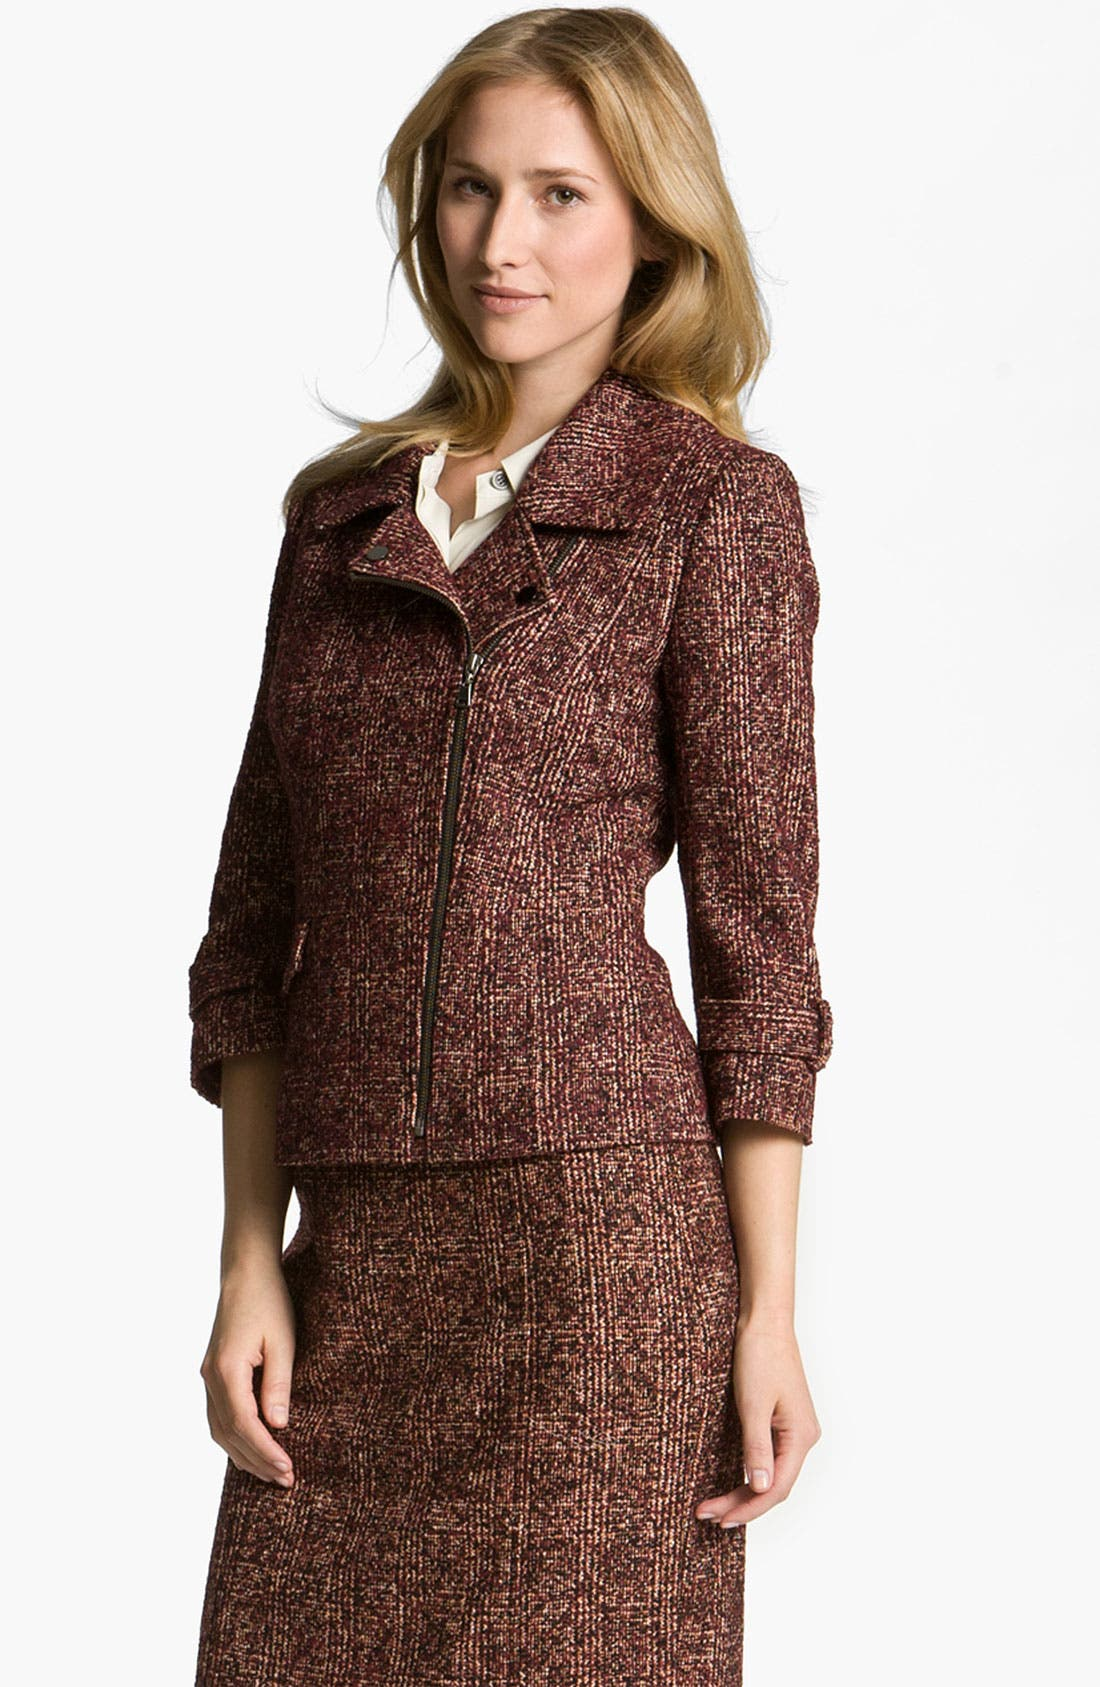 Alternate Image 1 Selected - Nordstrom Collection 'Cambon' Tweed Jacket